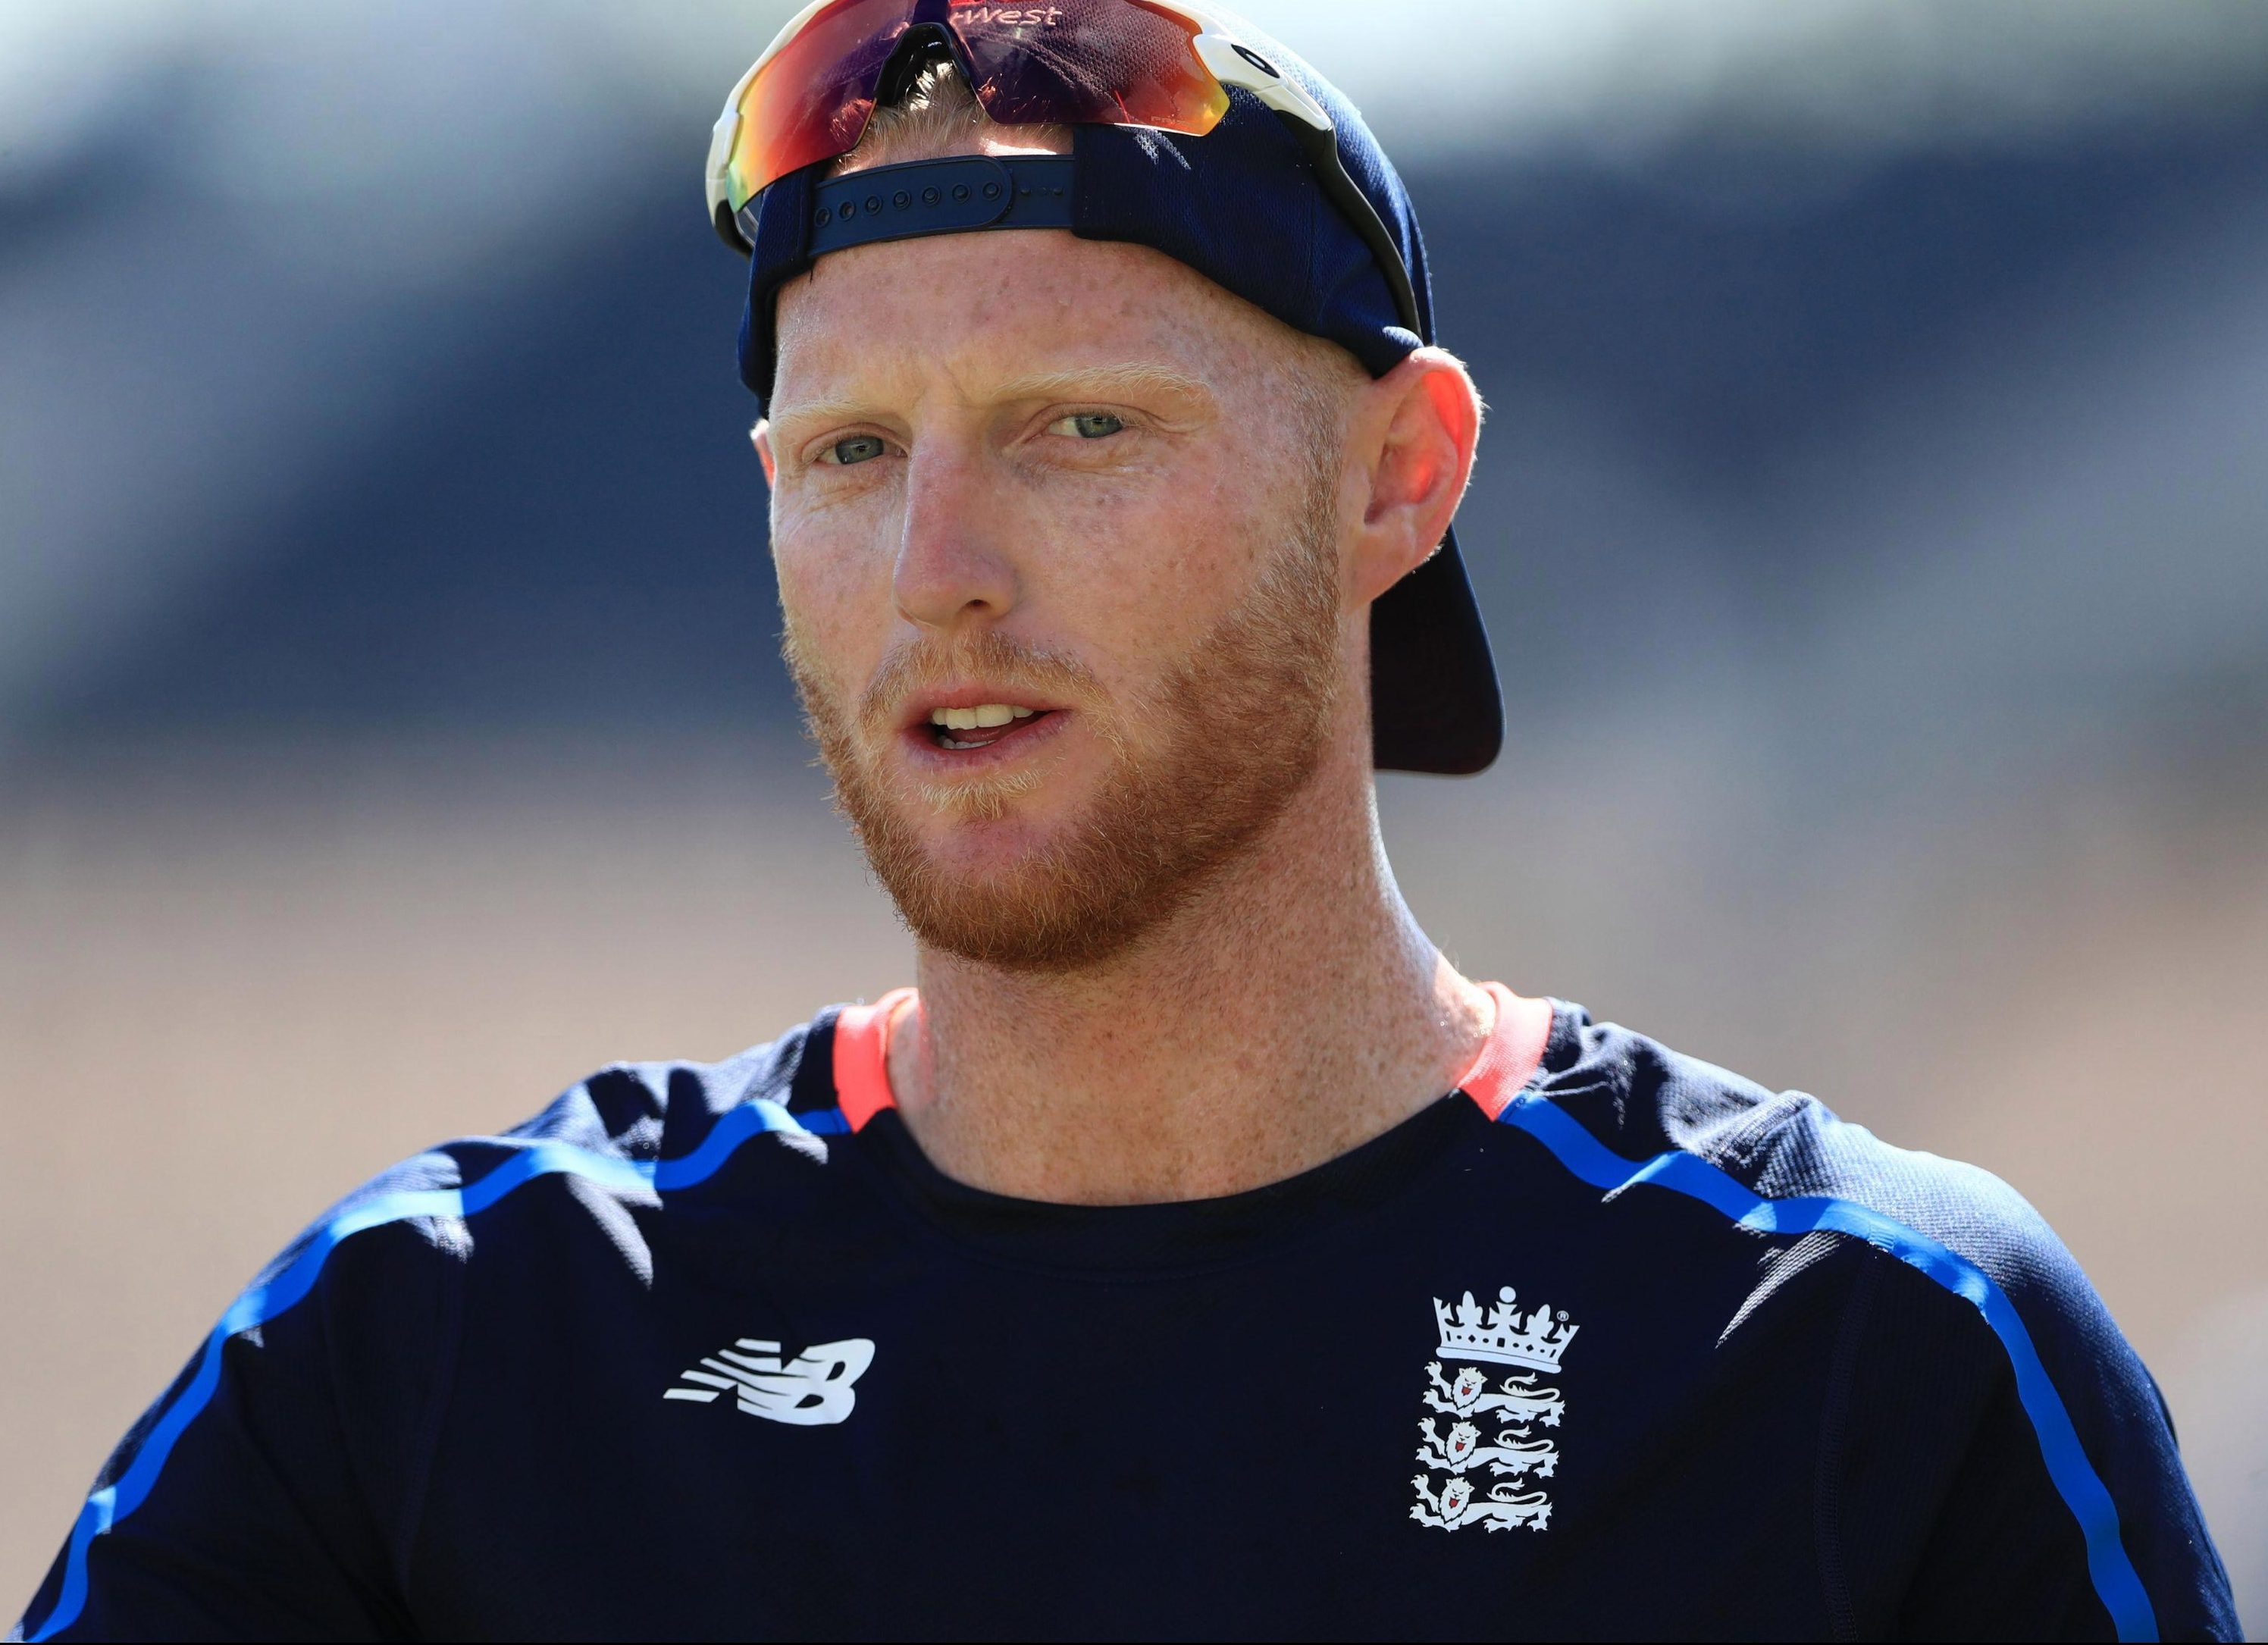 All-rounder Ben Stokes needs to show discipline on and off the field as he returns